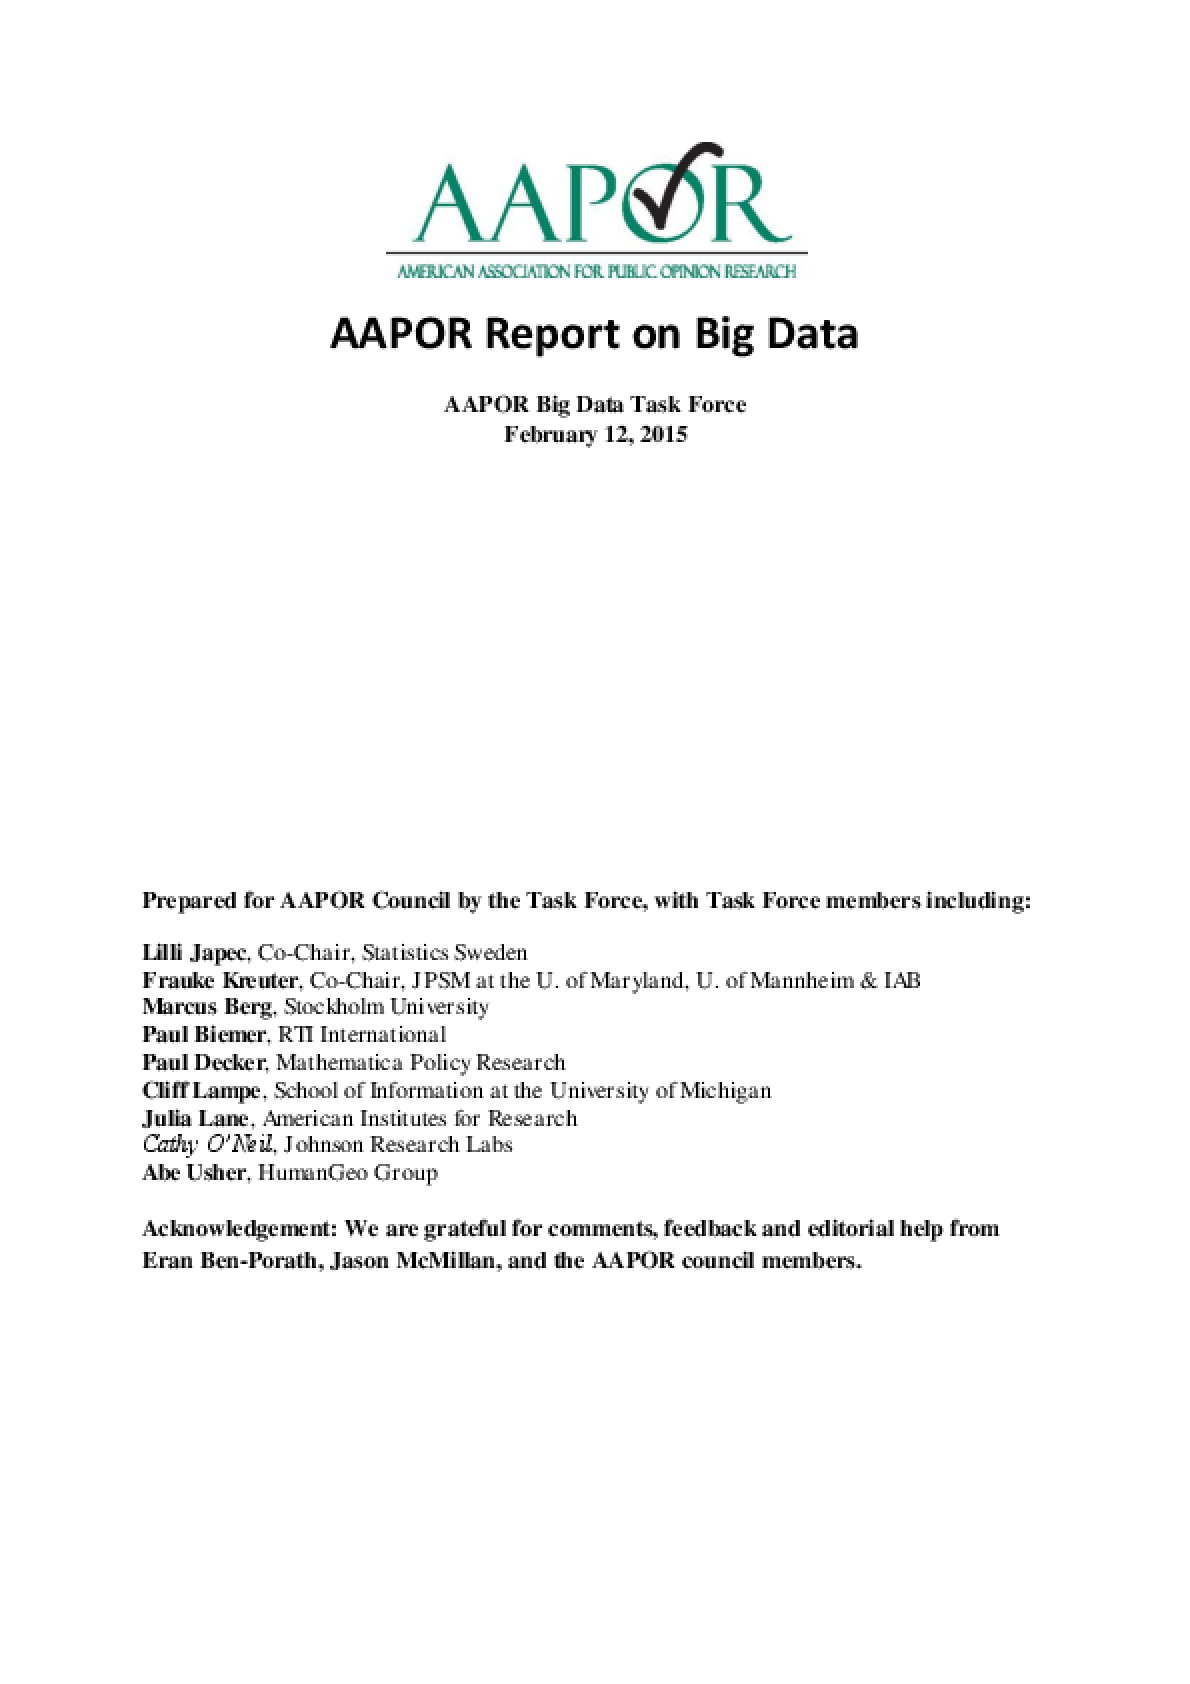 AAPOR Report on Big Data